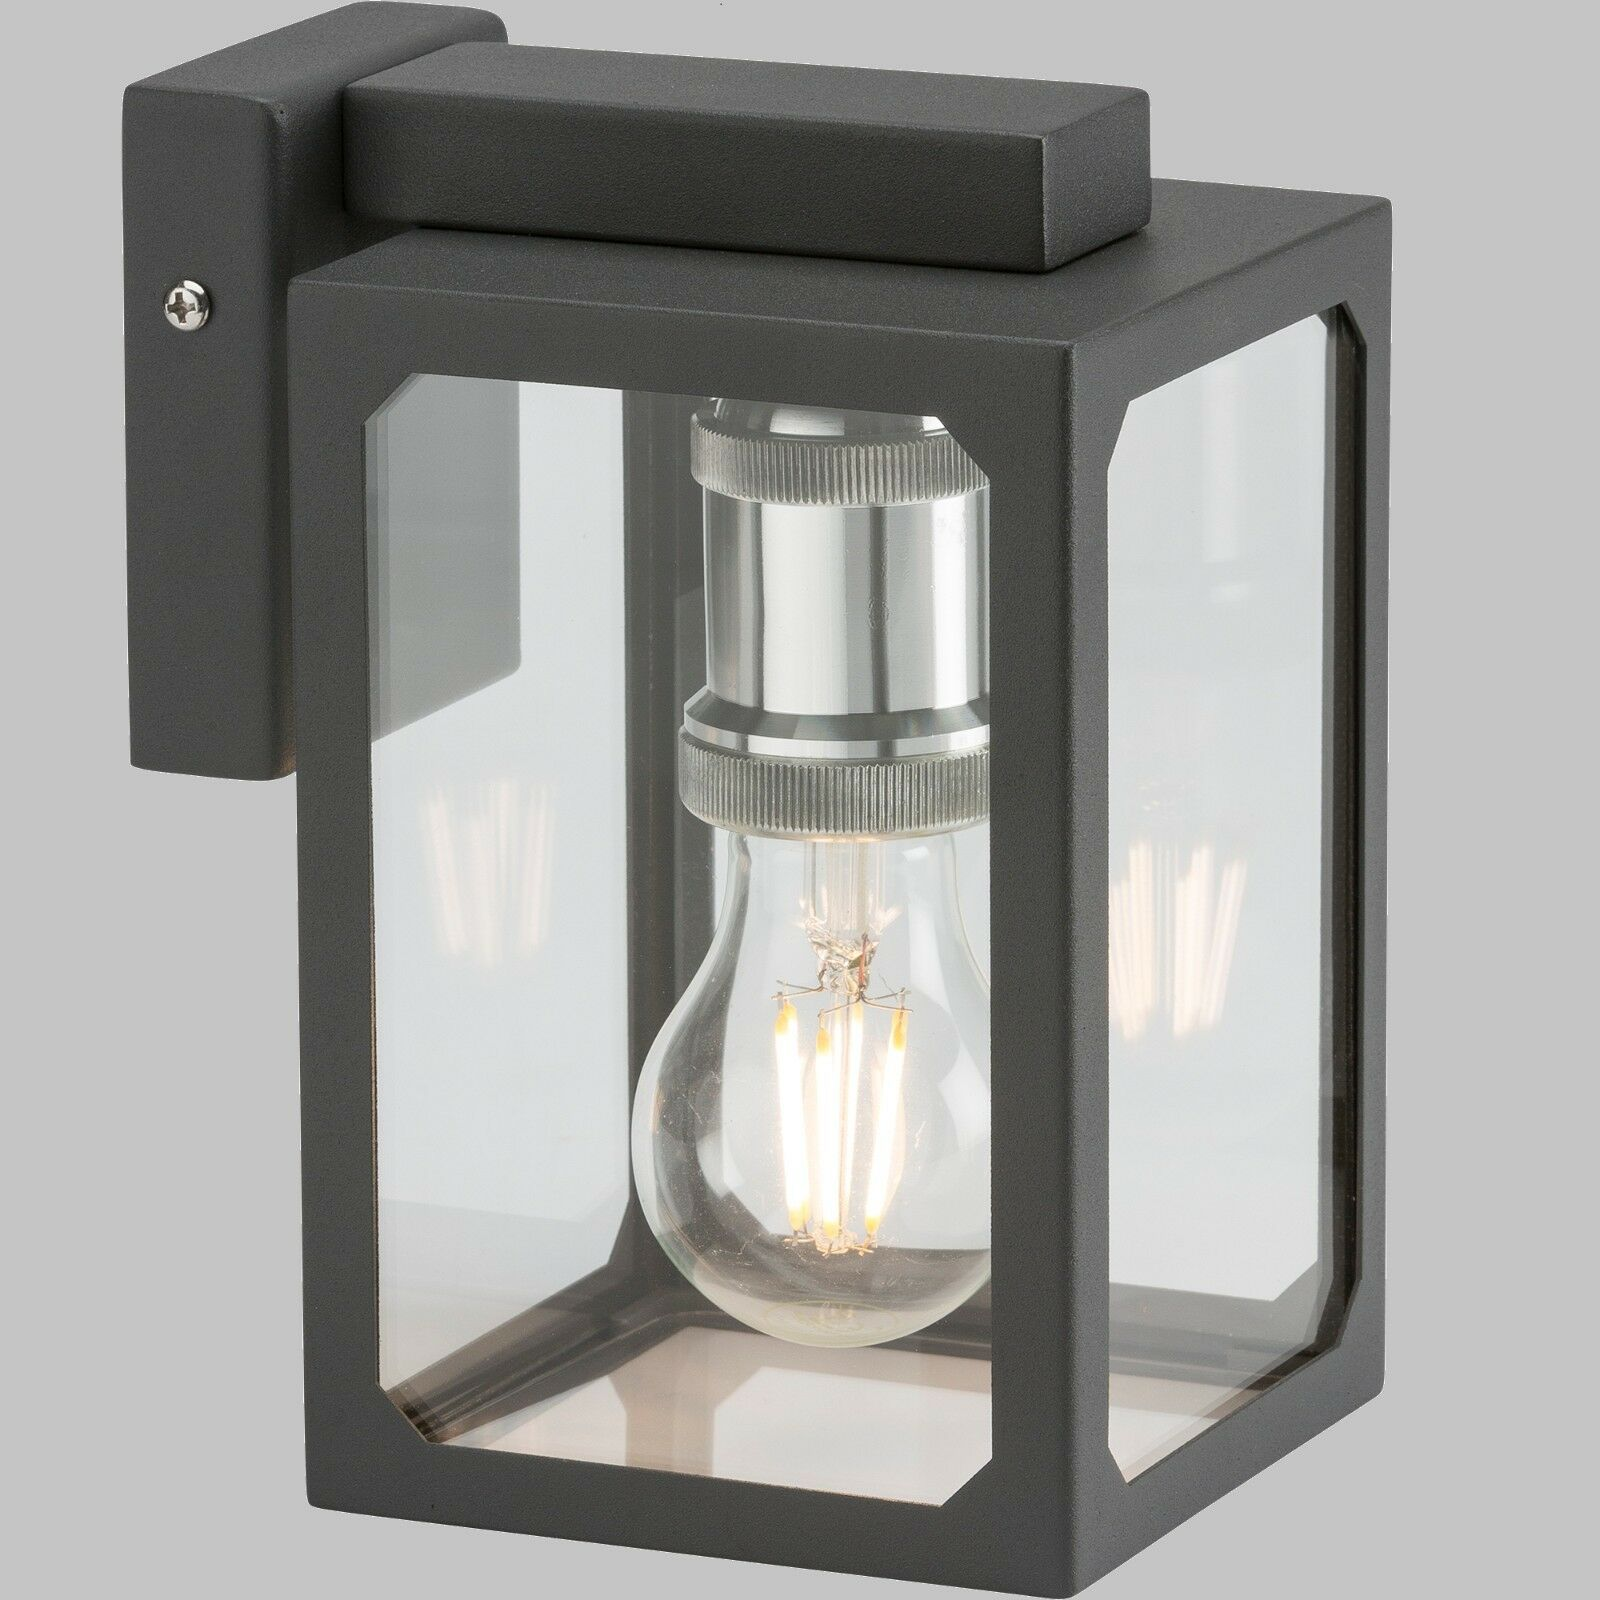 Modern Modern Modern Classic Wall Lantern- Anthracite with LED bulb included as shown dda3f4